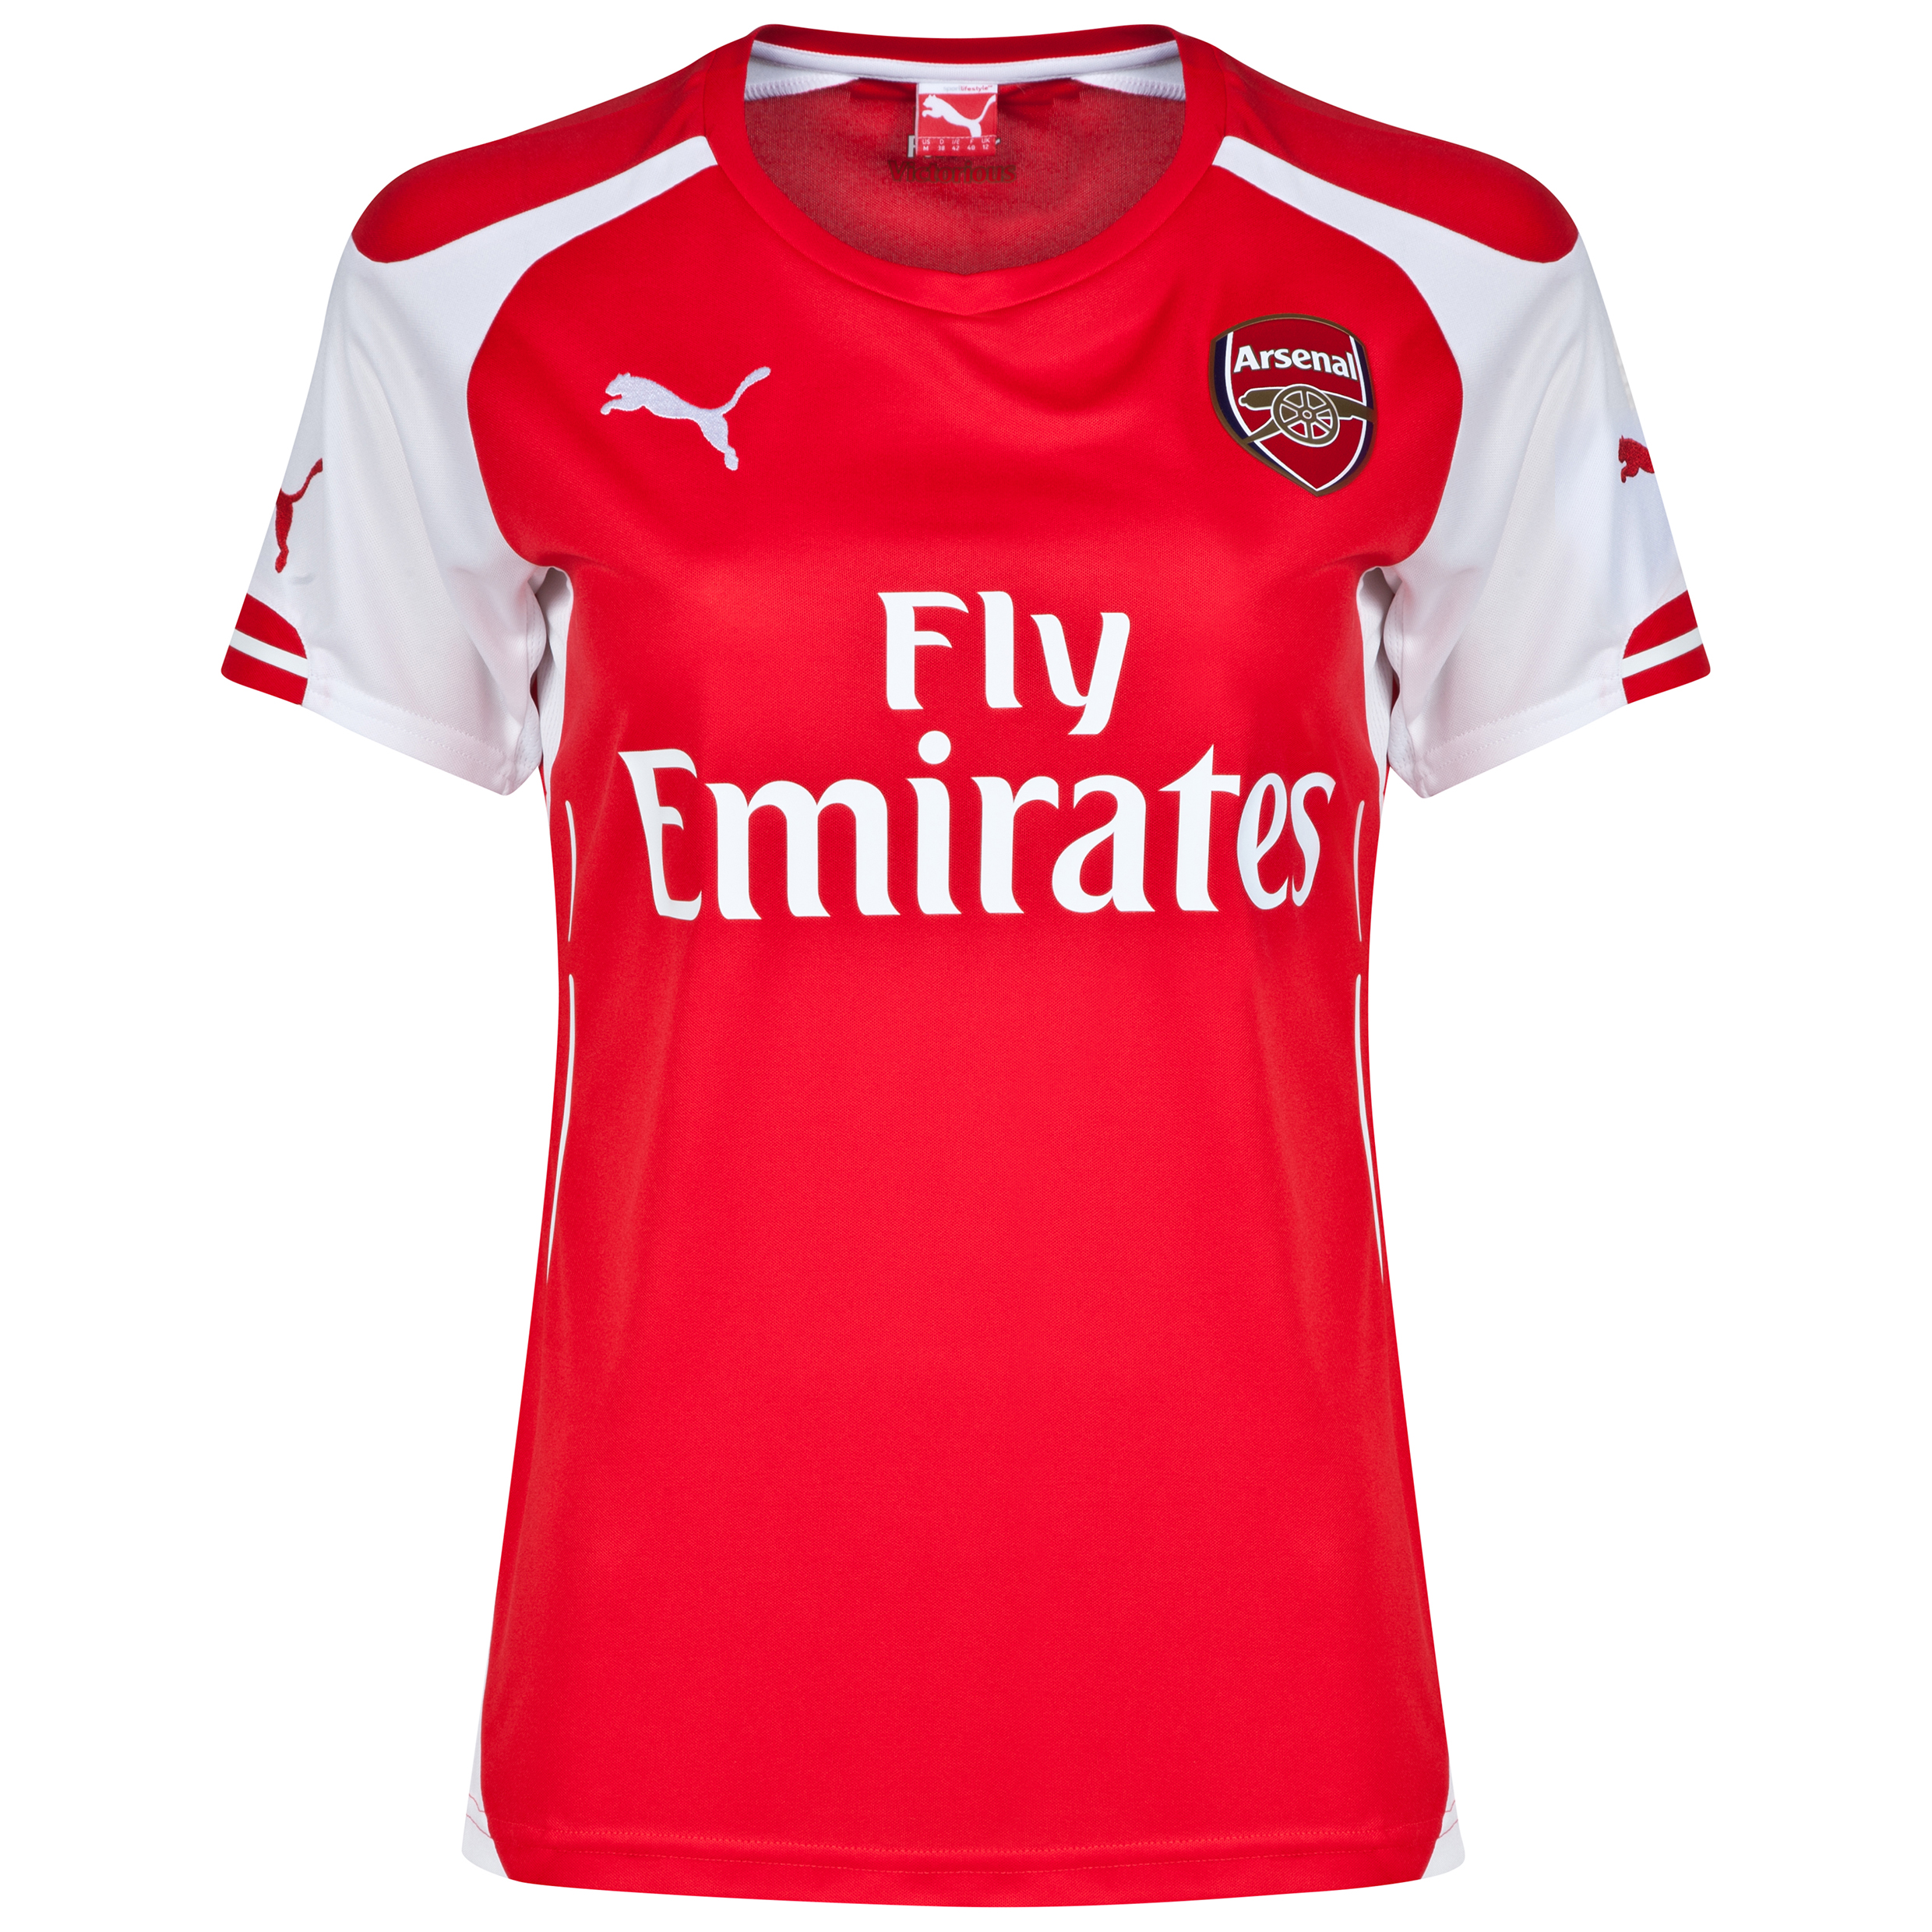 Arsenal Home Shirt 2014/15 - Womens